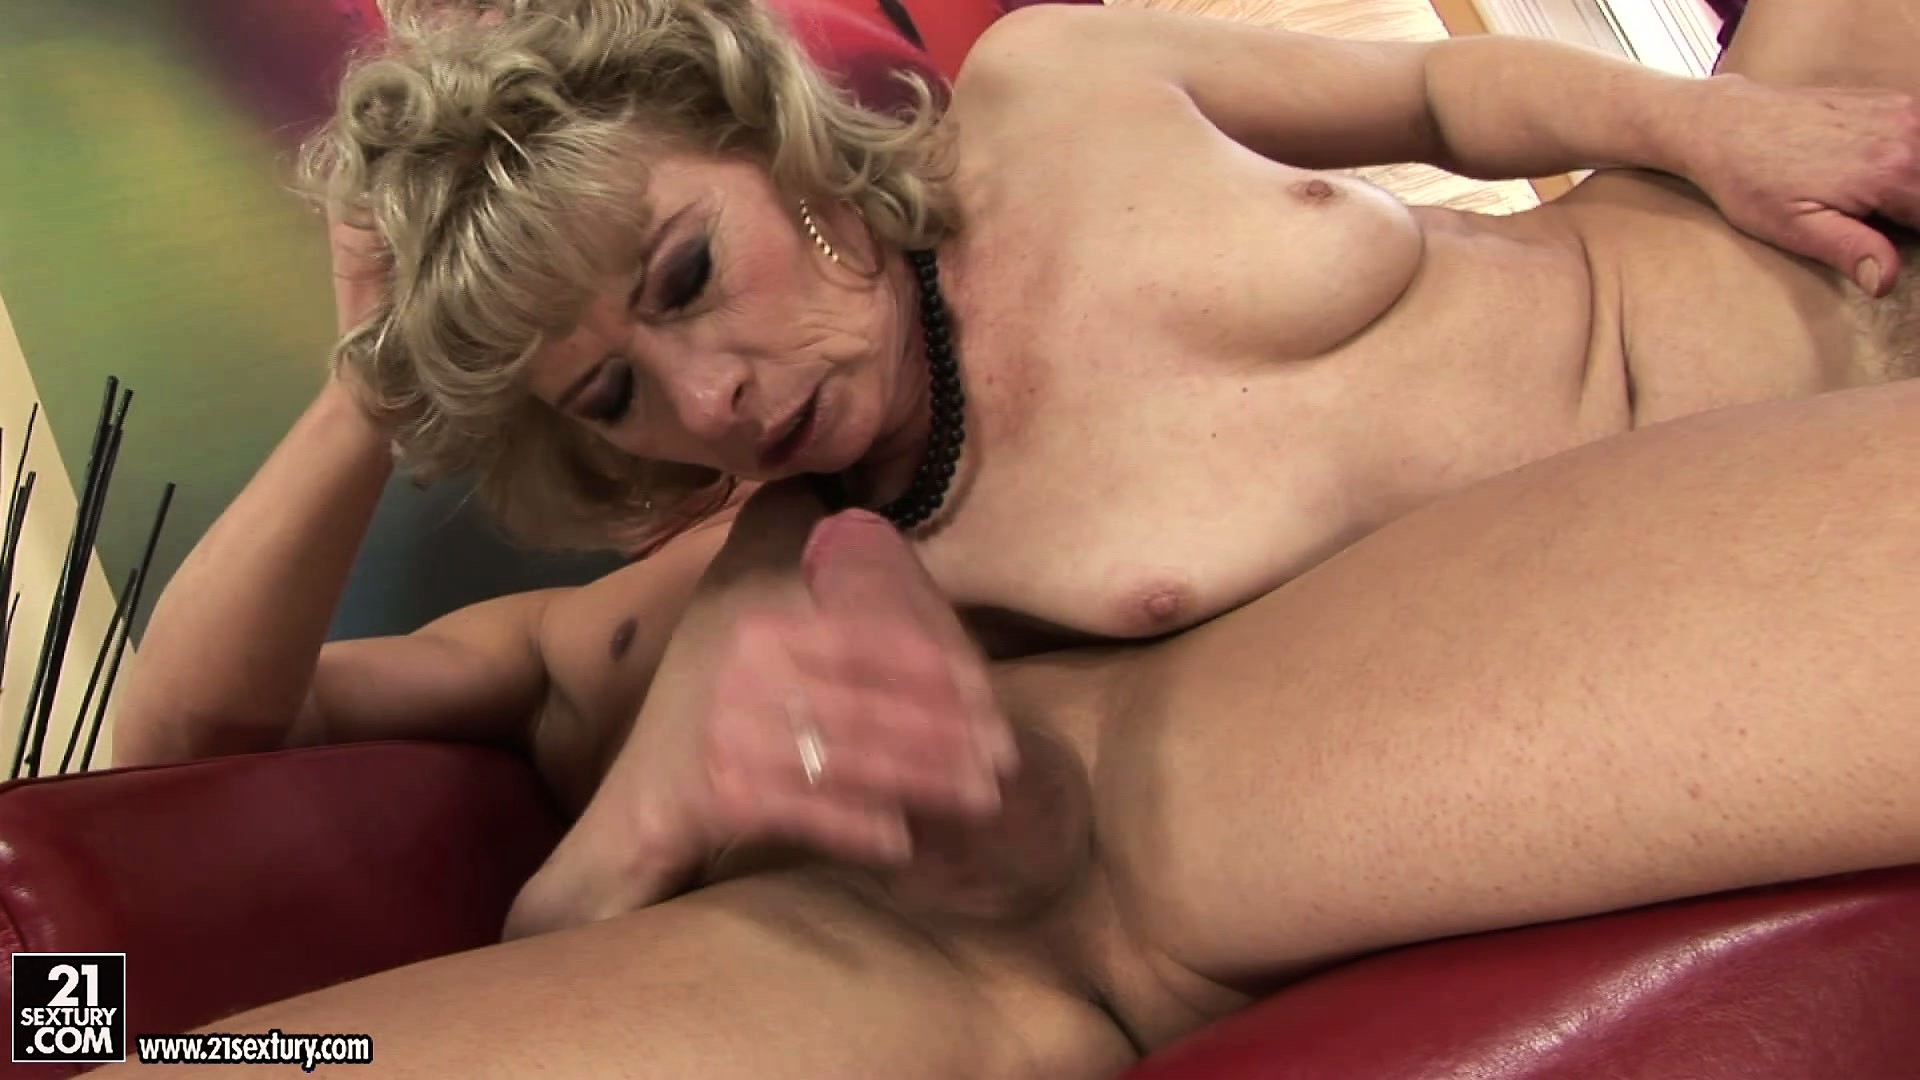 Porn Tube of Real Dirty Granny Gets To Suck On A Young Lad's Massive Member